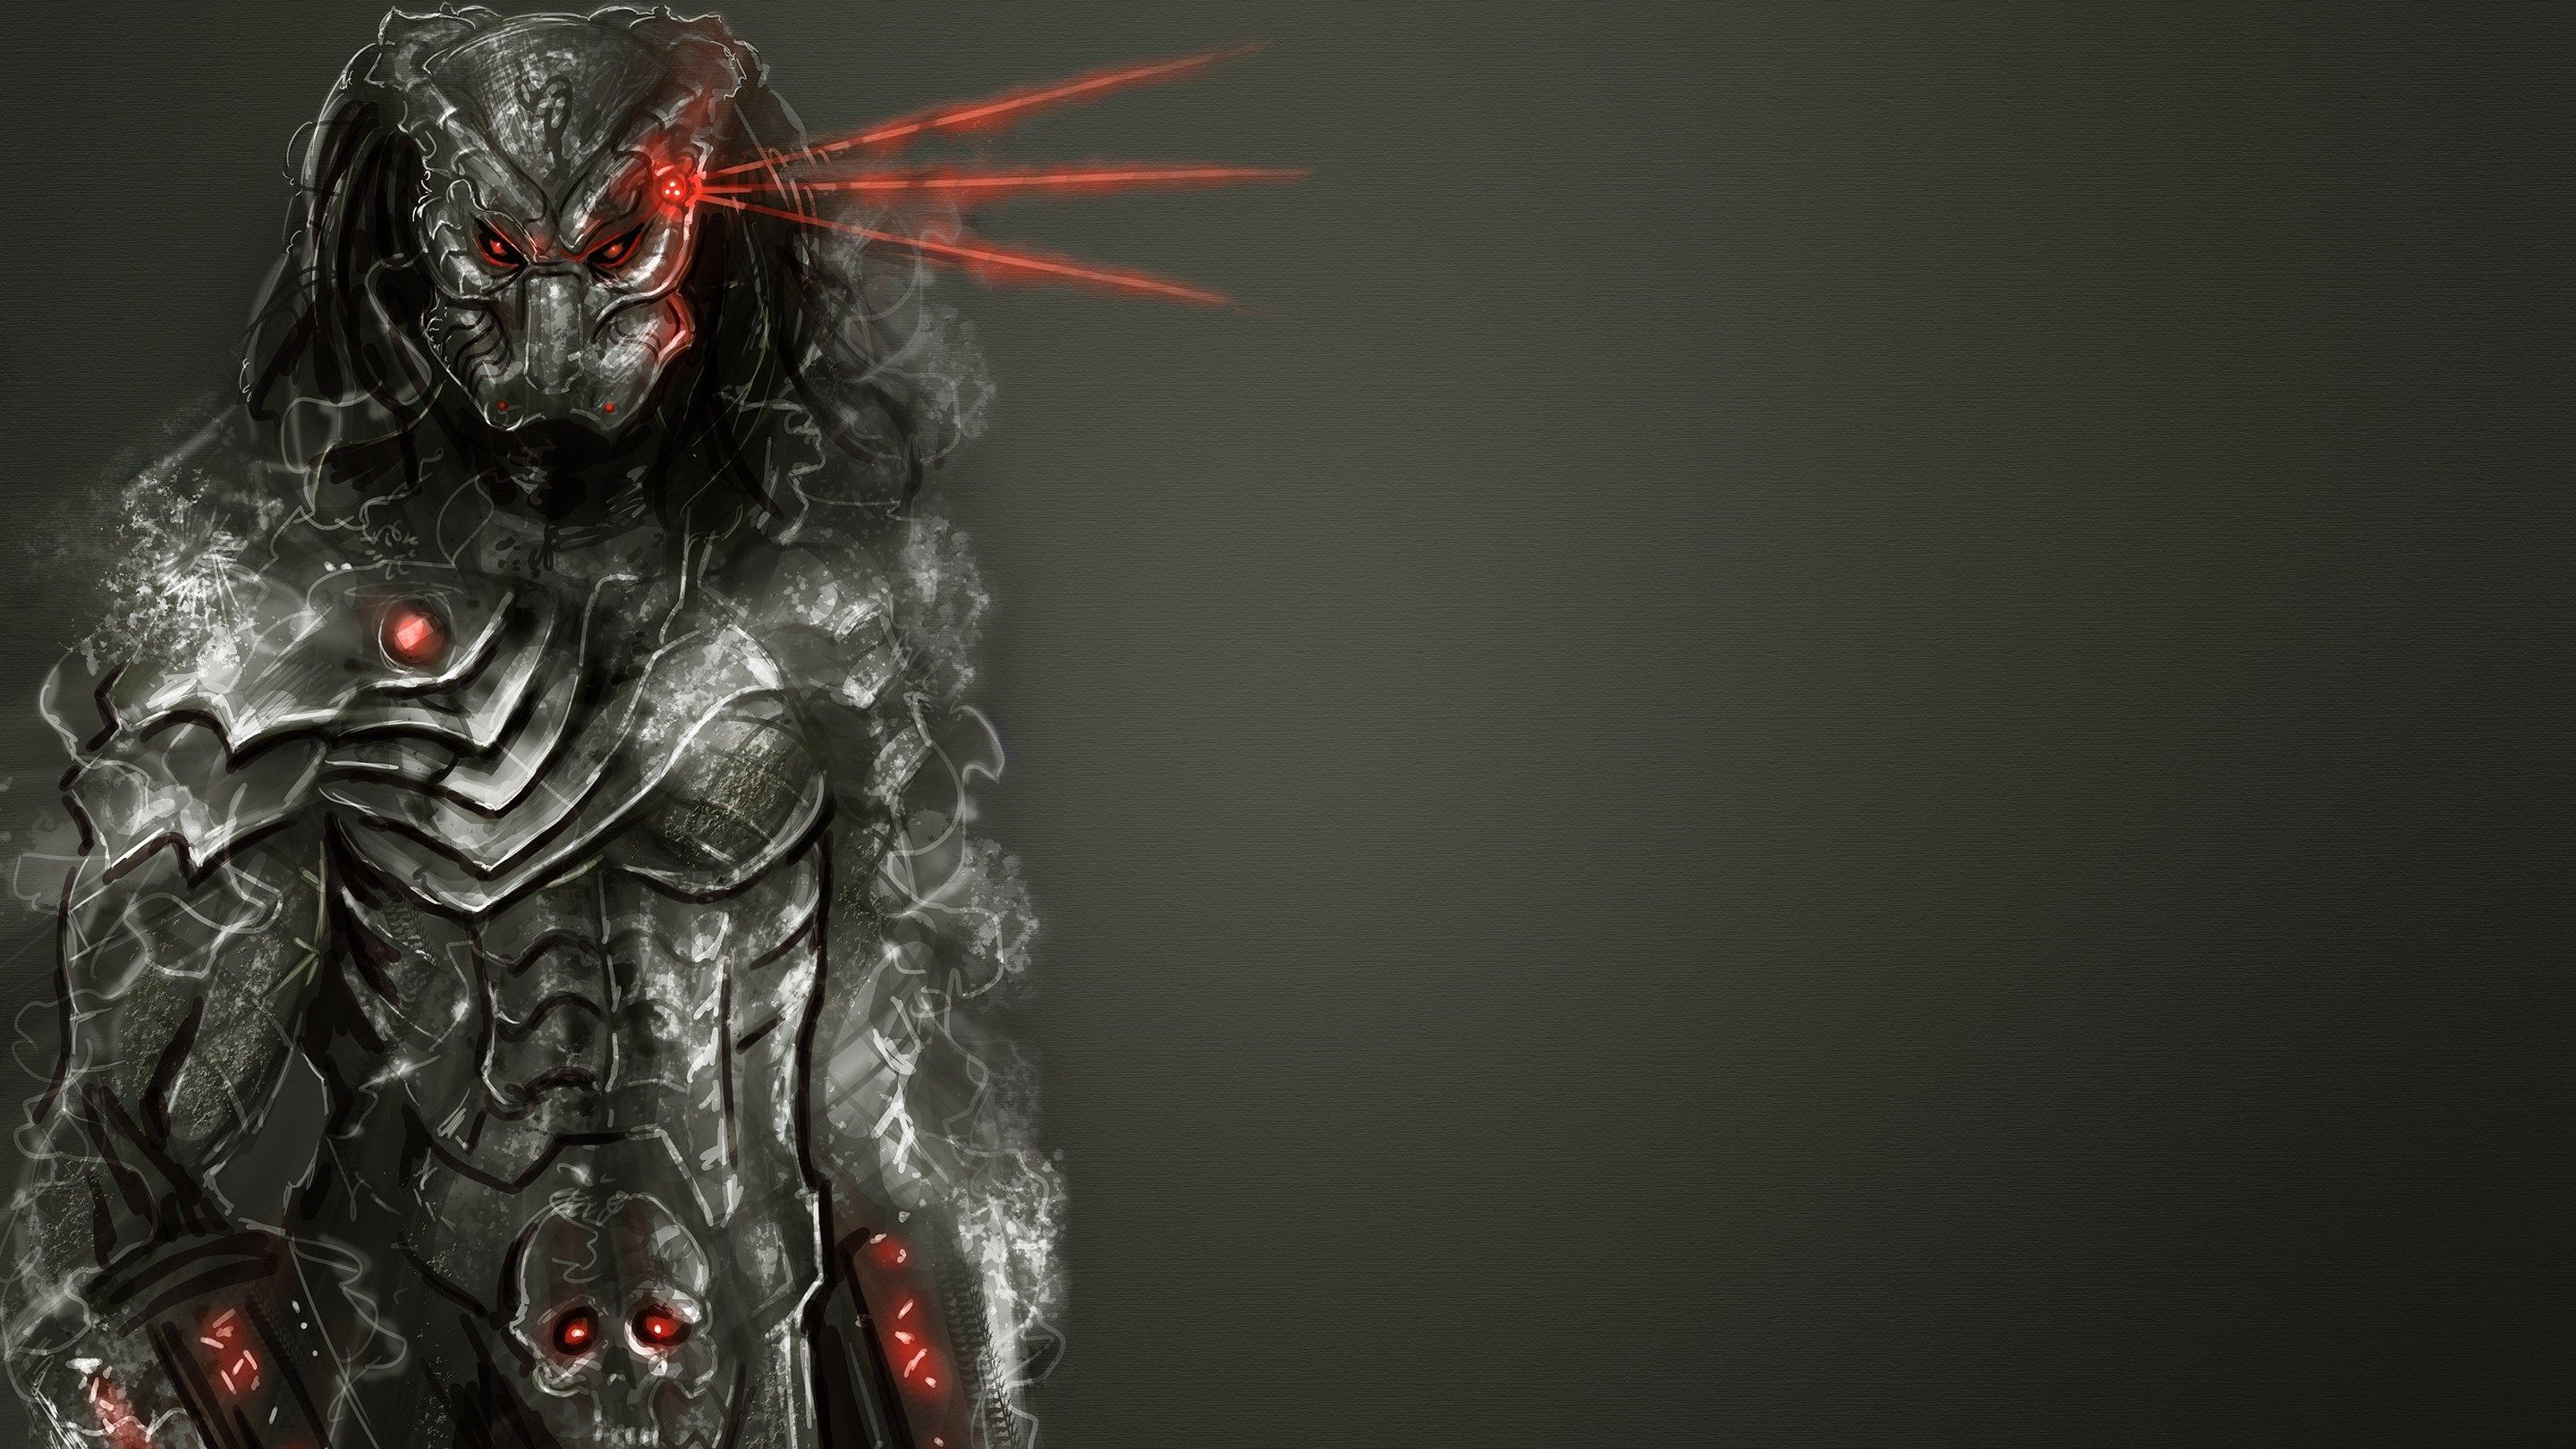 predator for desktop hd Predator, Full hd wallpaper